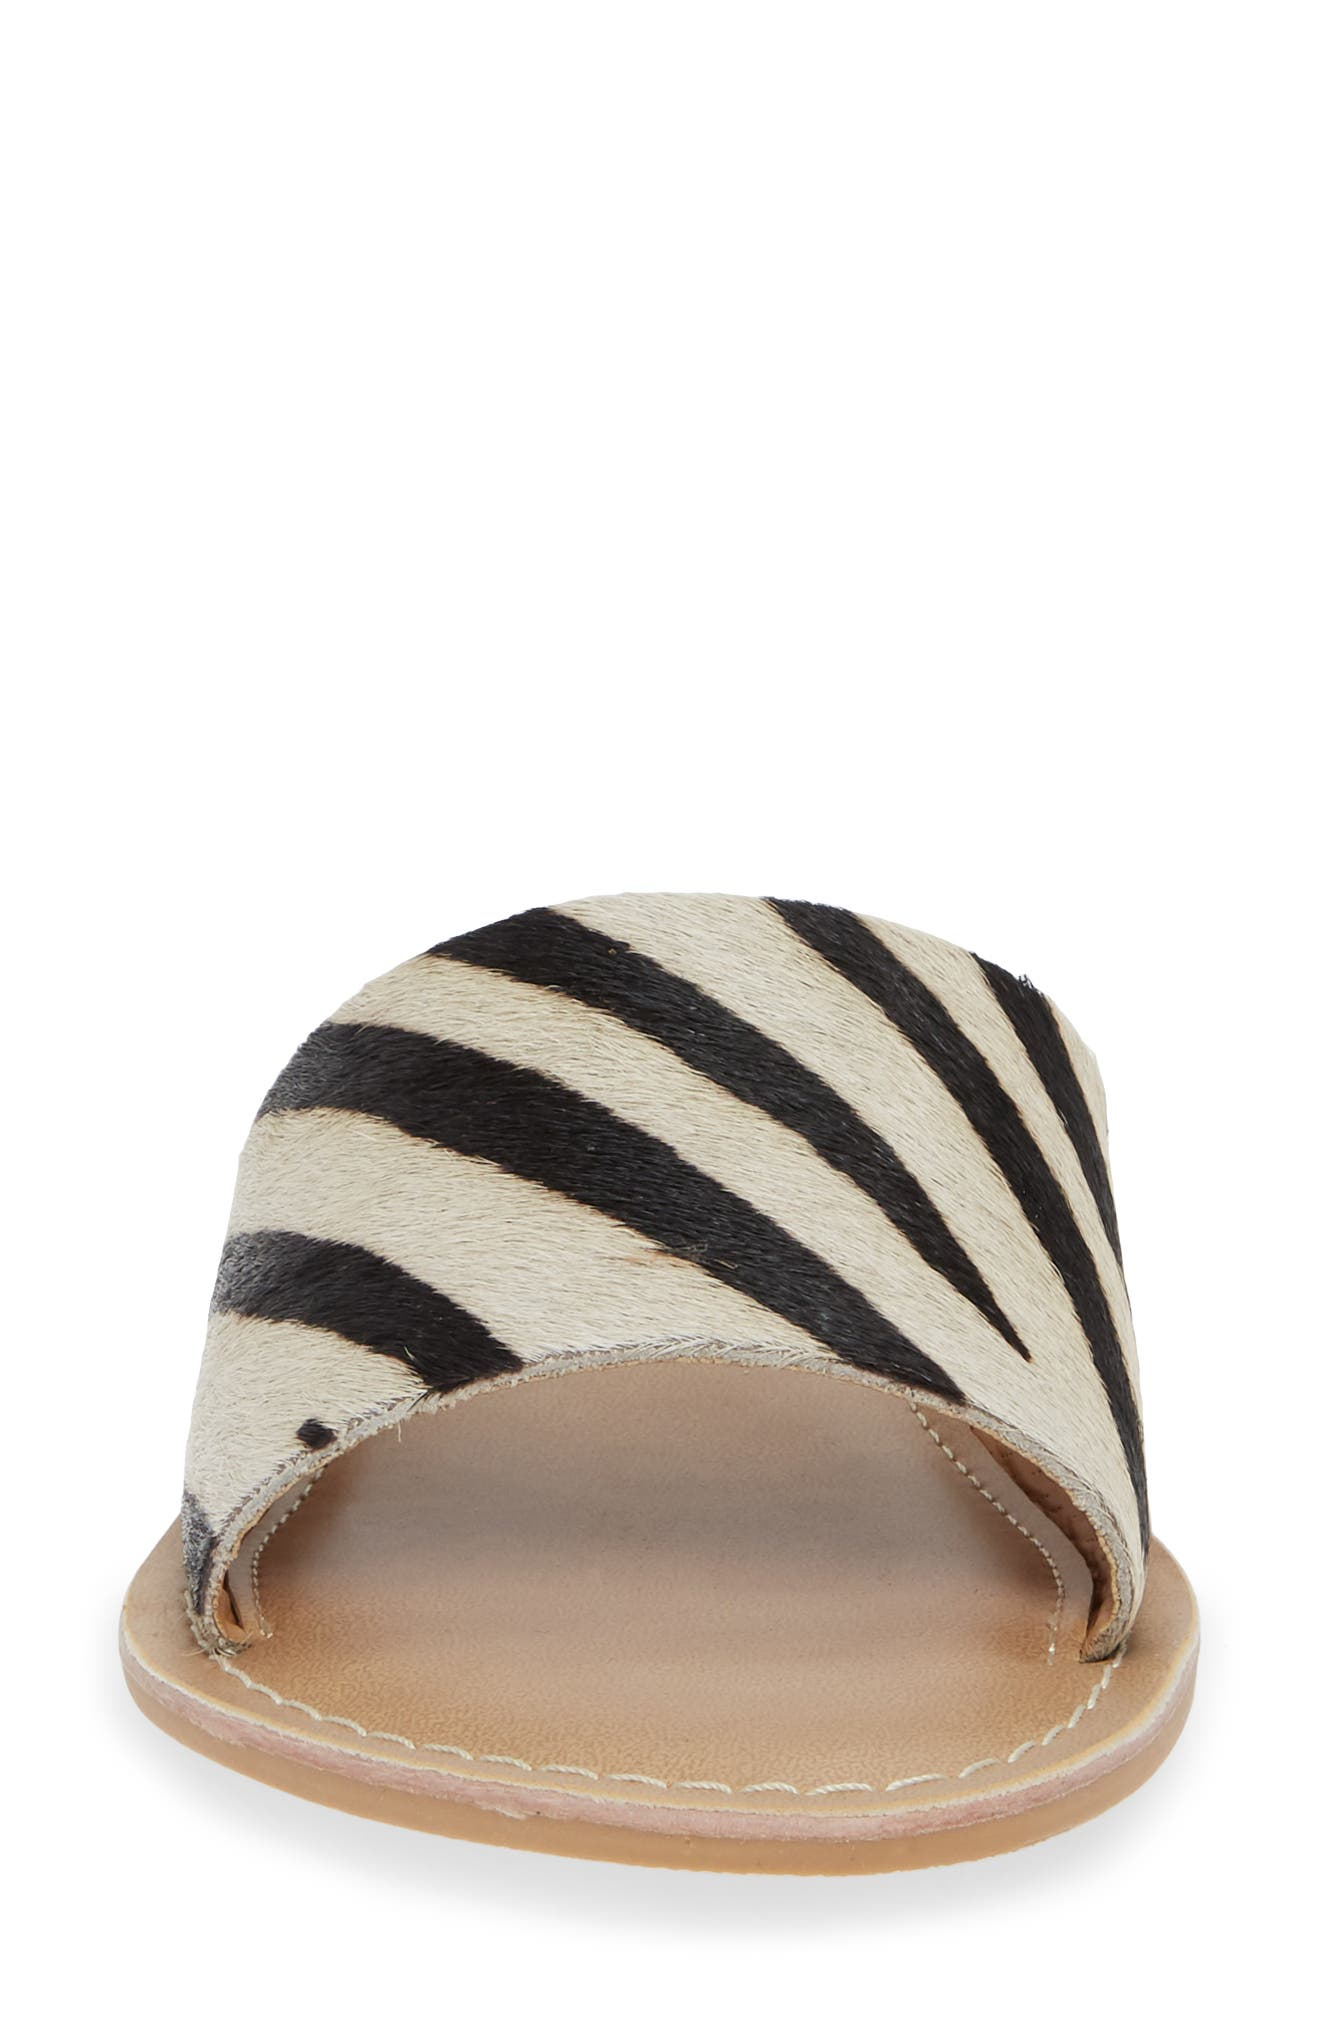 Cabana Genuine Calf Hair Slide Sandal,                             Alternate thumbnail 4, color,                             ZEBRA PRINT CALF HAIR